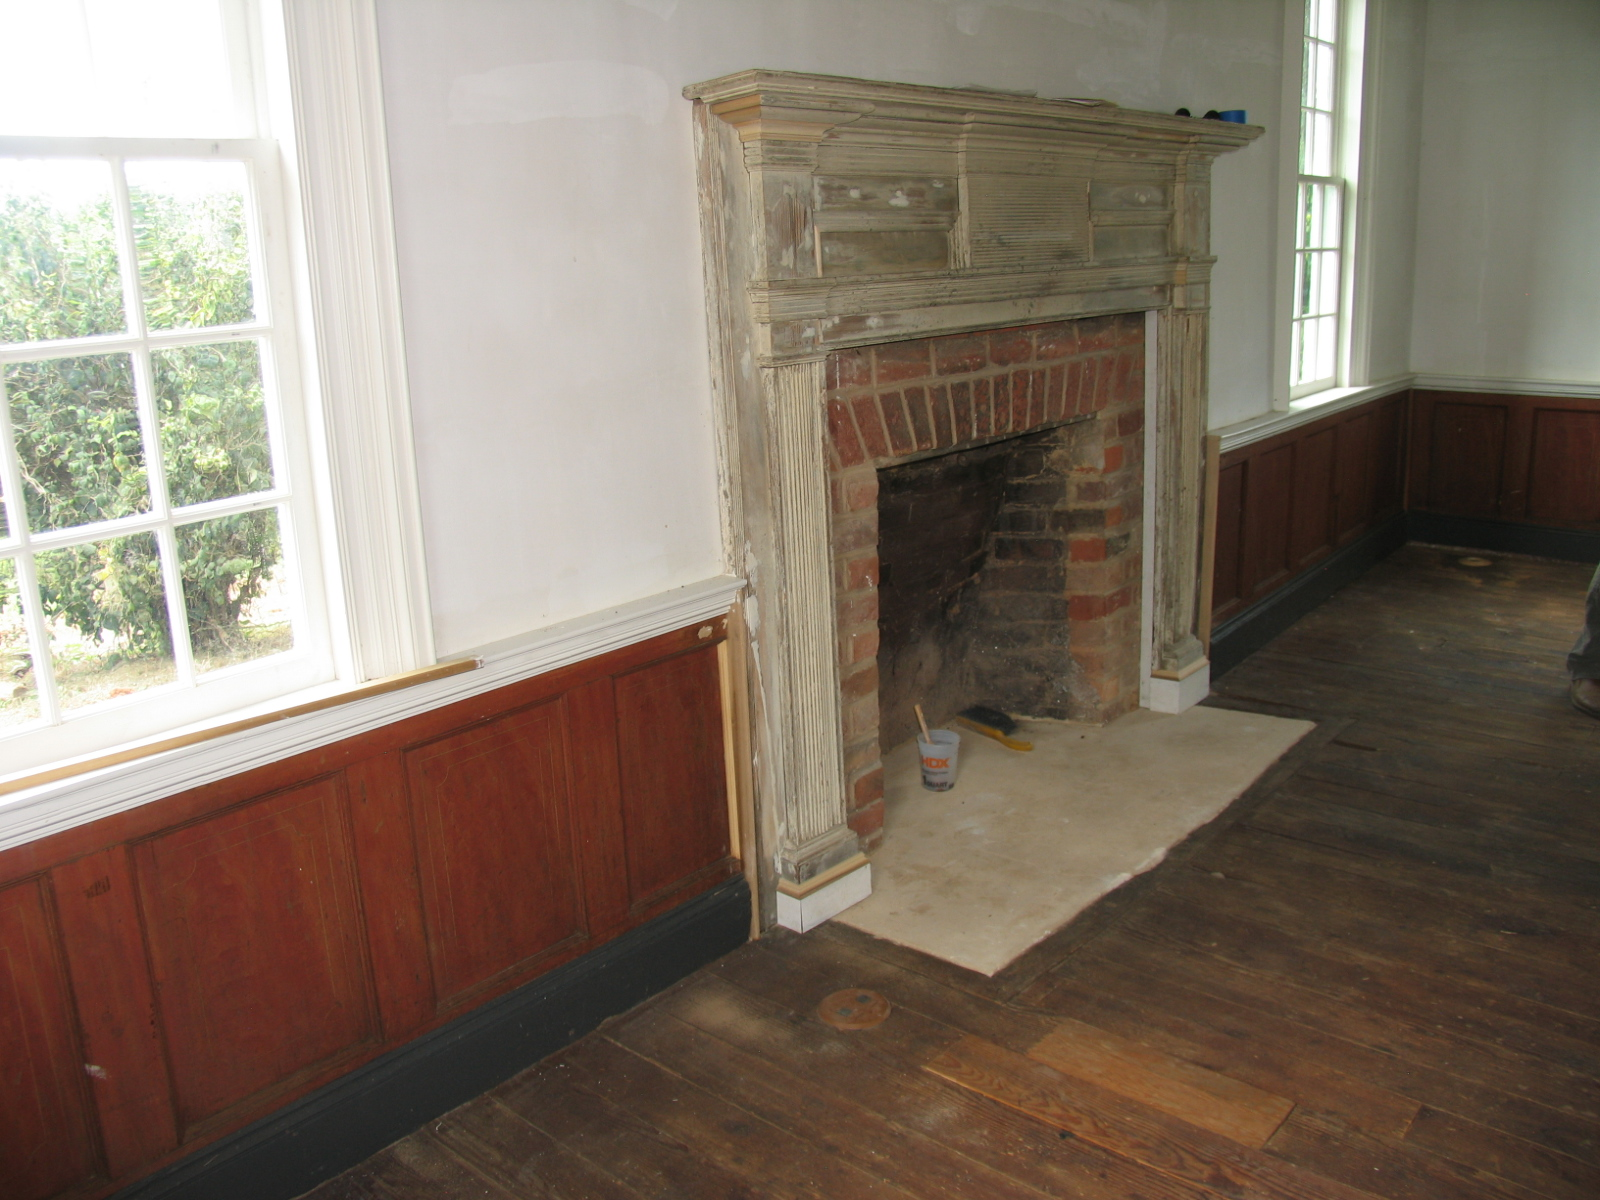 West parlor with restored wainscot.  Mantle restoration and wallpaper restoration ongoing.